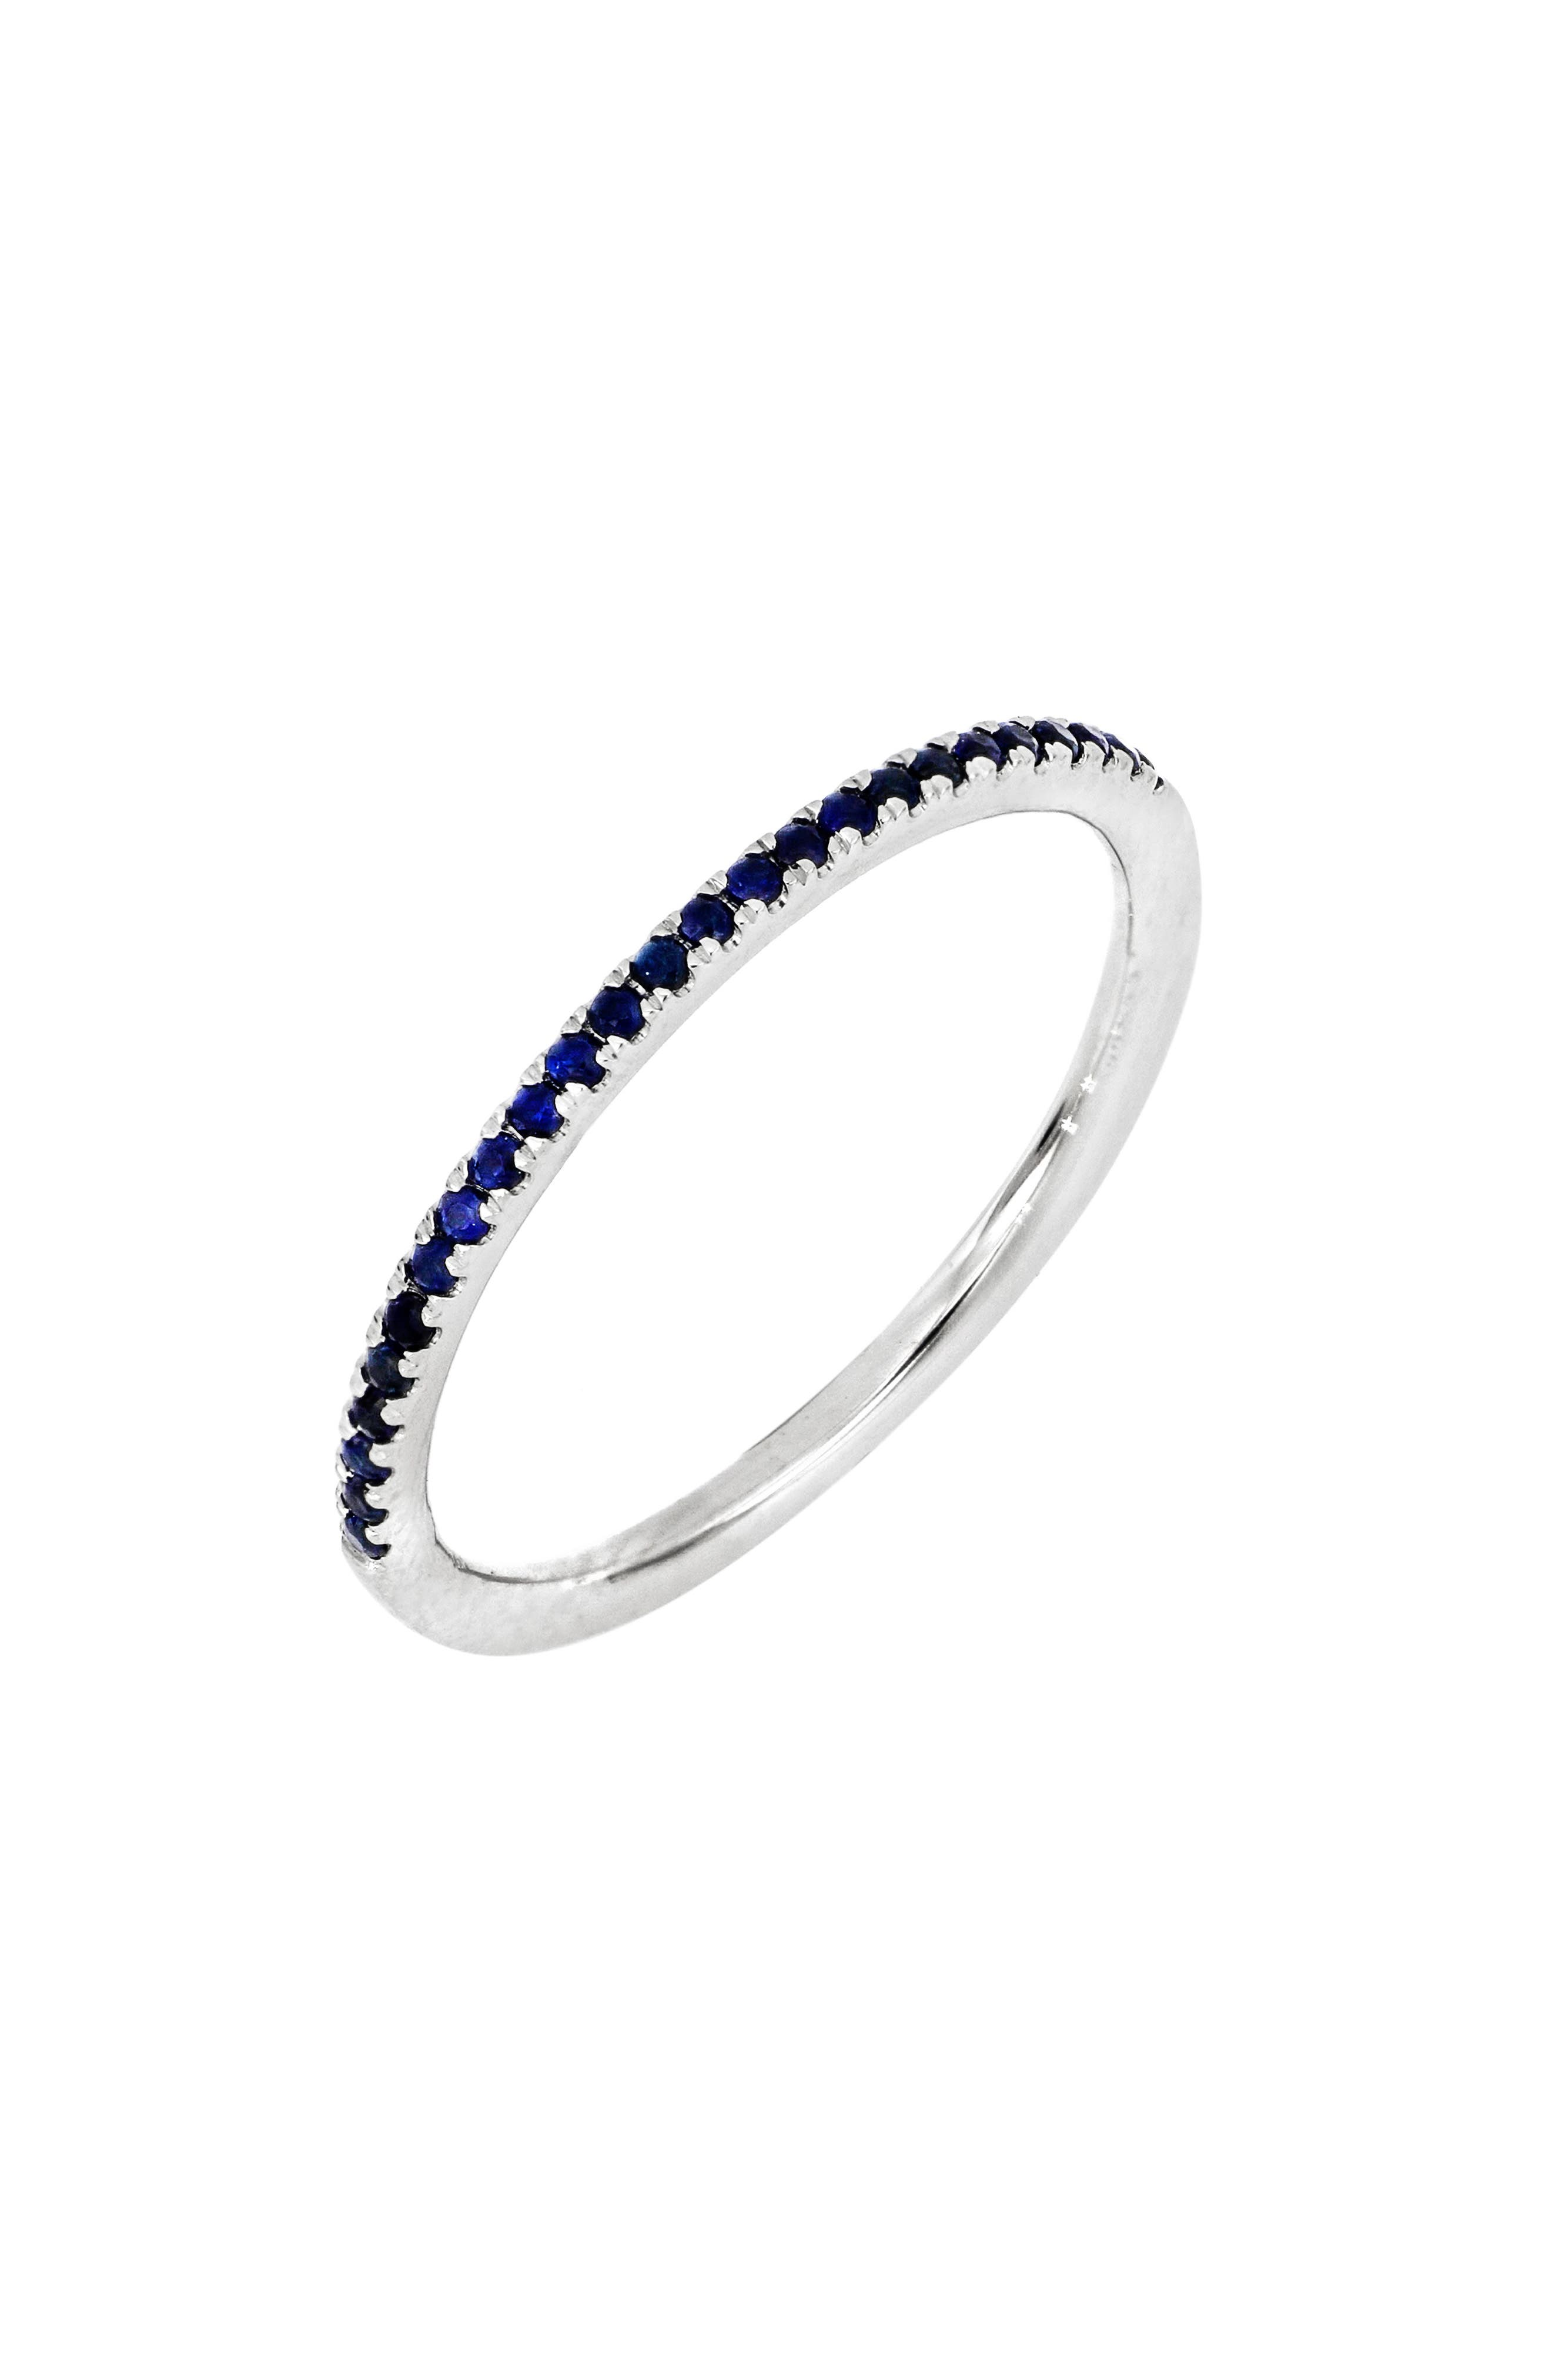 A handcrafted white-gold ring set with 25 gleaming sapphires is stunning whether stacked or worn as a standalone piece. Style Name: Bony Levy Stackable Sapphire Ring (Nordstrom Exclusive). Style Number: 6057178. Available in stores.